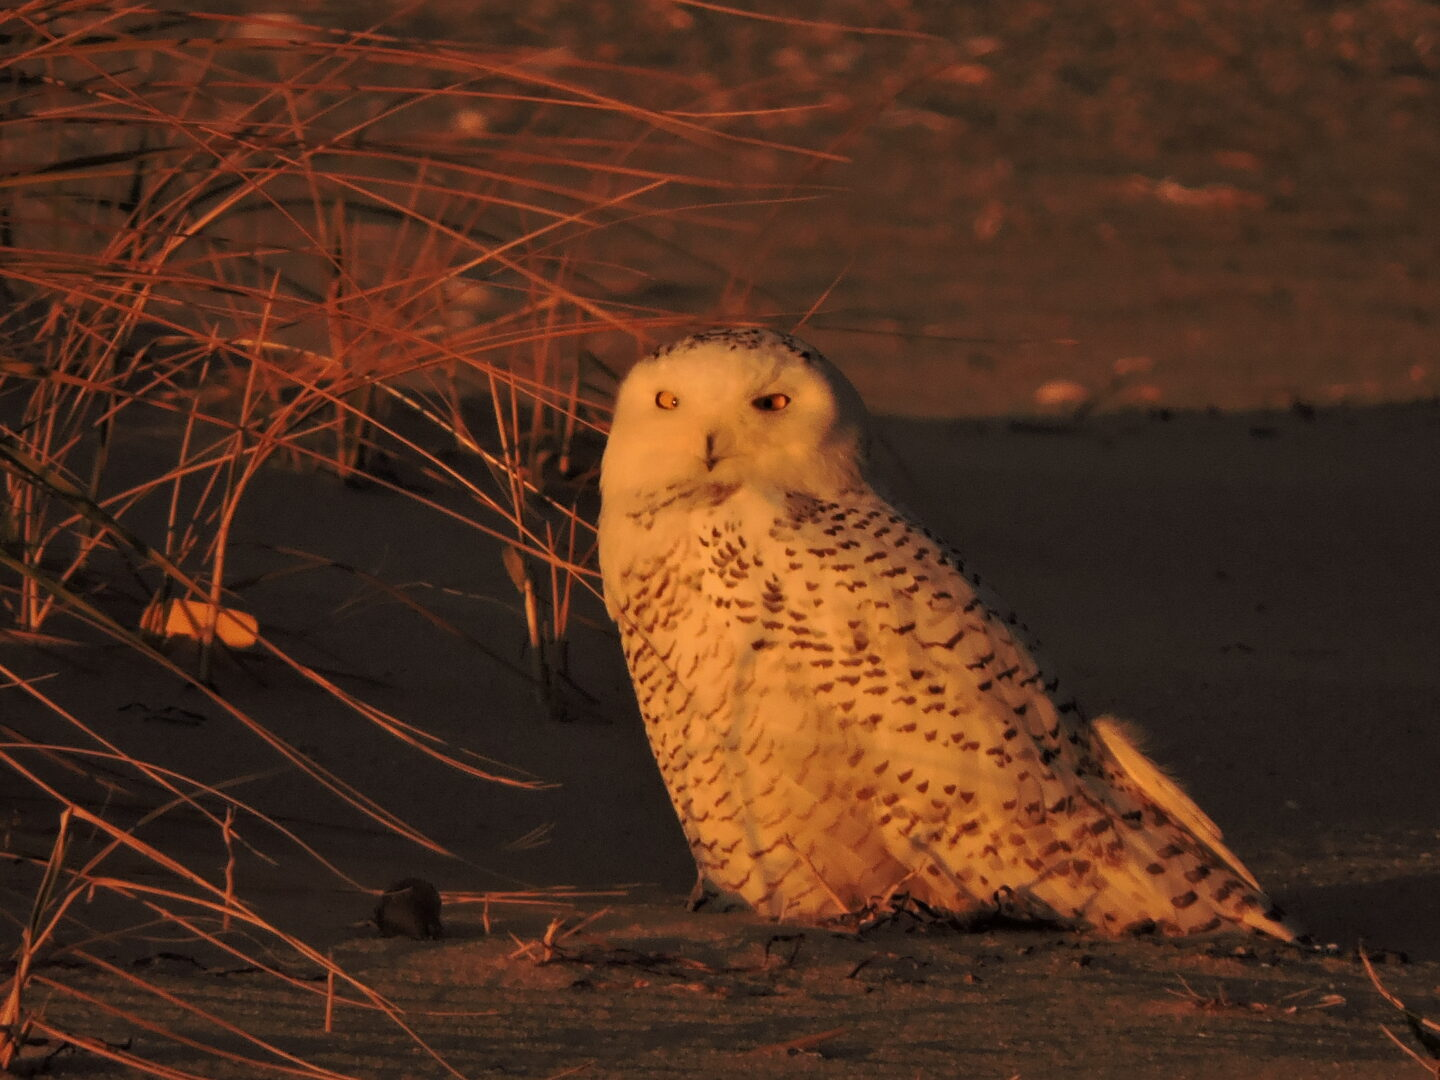 This Snowy Owl regurgitated a pellet and you can see it if you look closely!